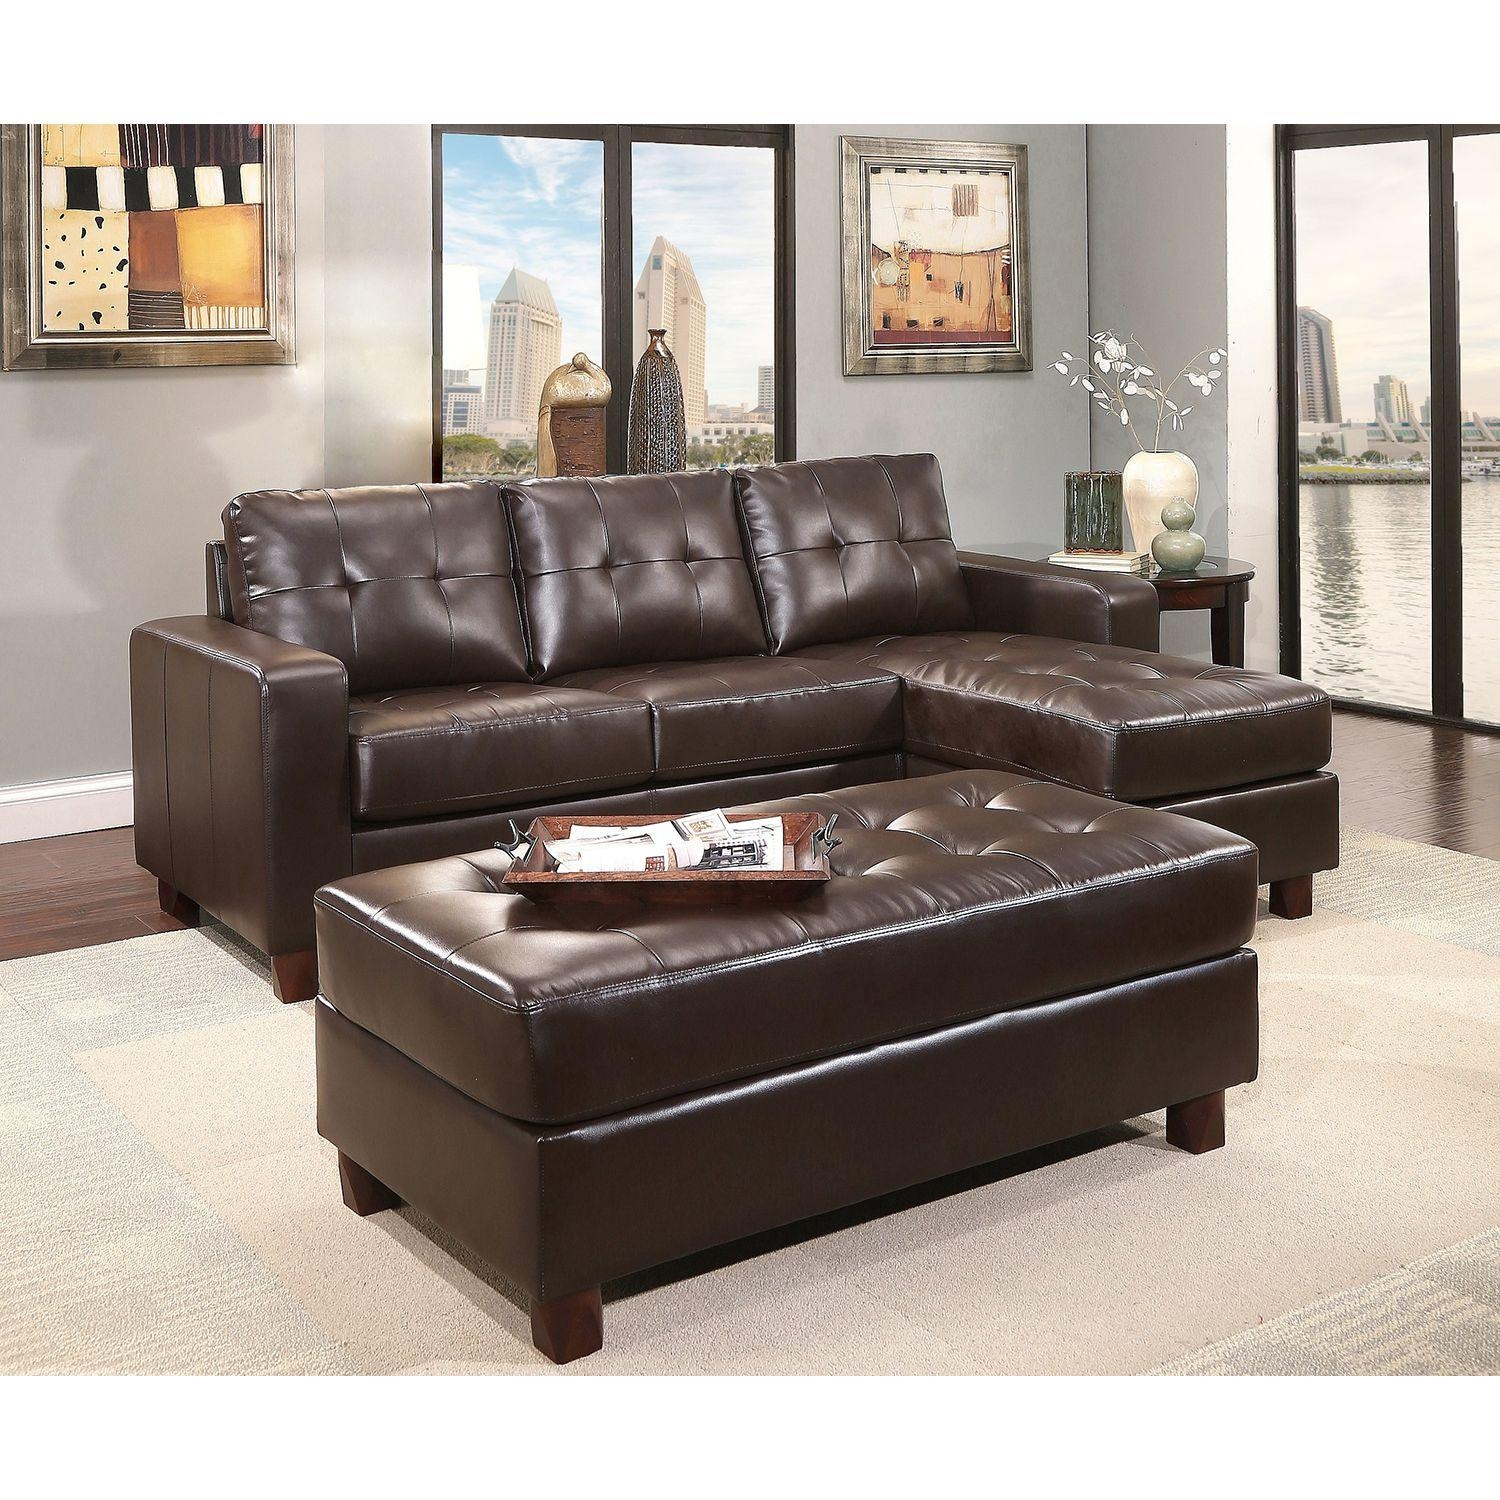 large sectional sofa with ottoman thomasville leather quality 20 best collection of oversized